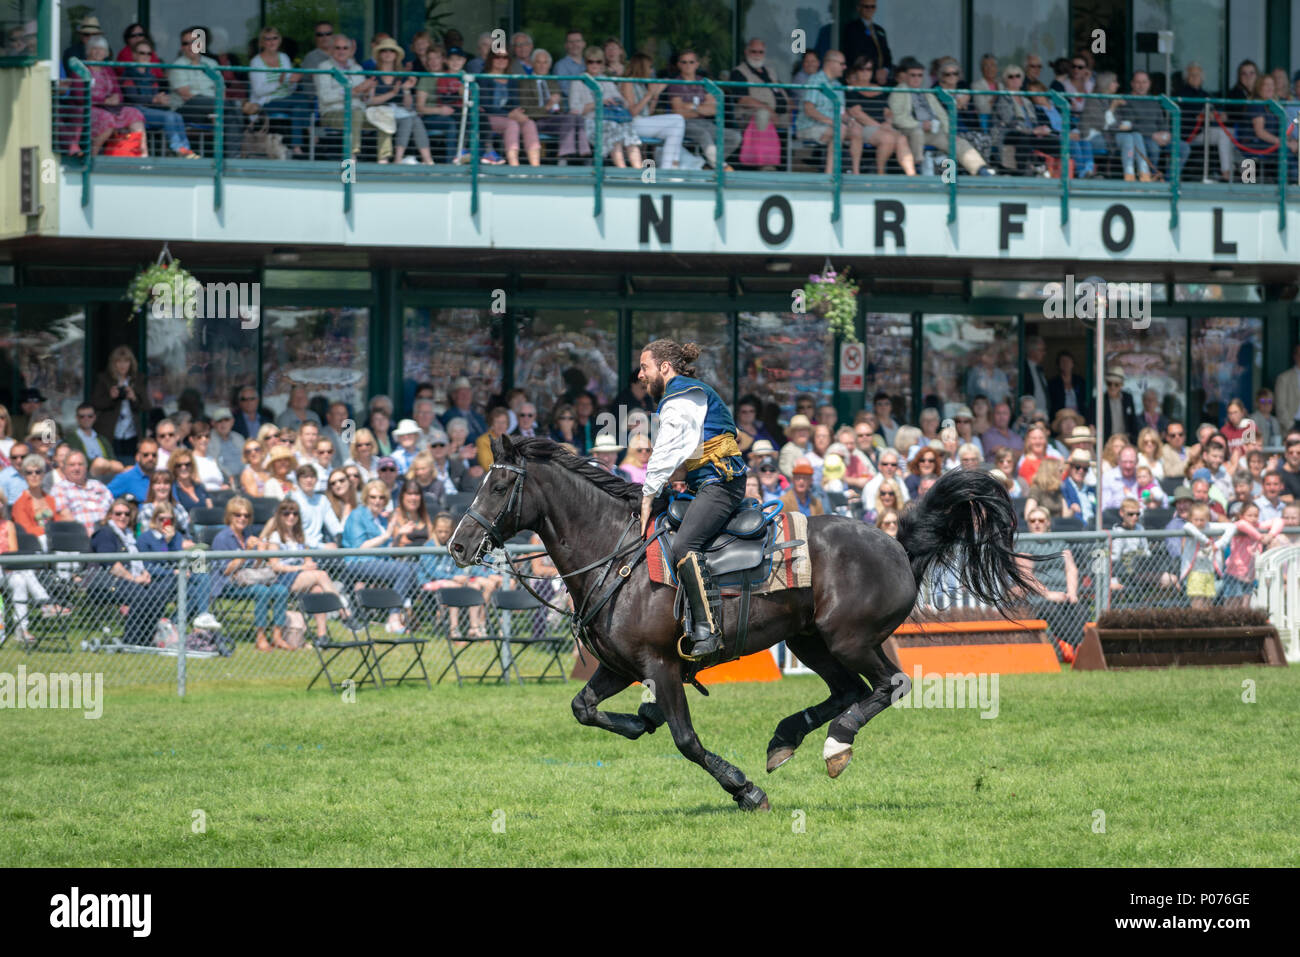 While riding a horse, a rider from the Atkinson Action Horses gallops across the showground in front of thrilled spectators during a performance at the South Of England Show in Ardingly, Sussex, UK. - Stock Image